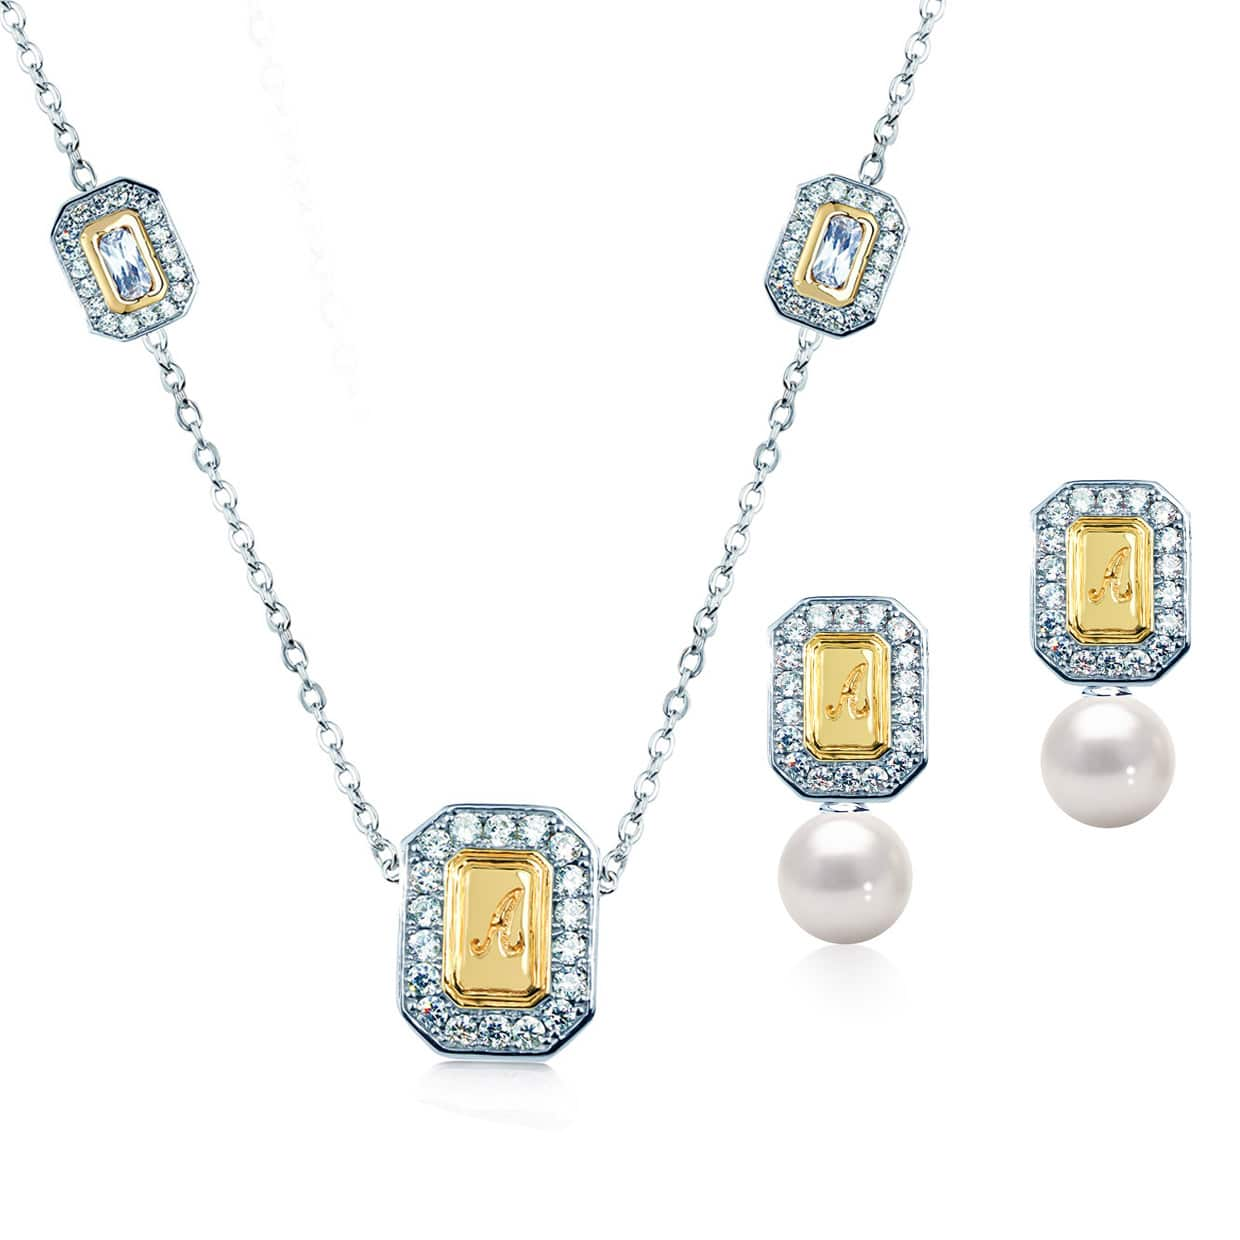 Abelstedt A Gold Gift Set with Freshwater Pearl